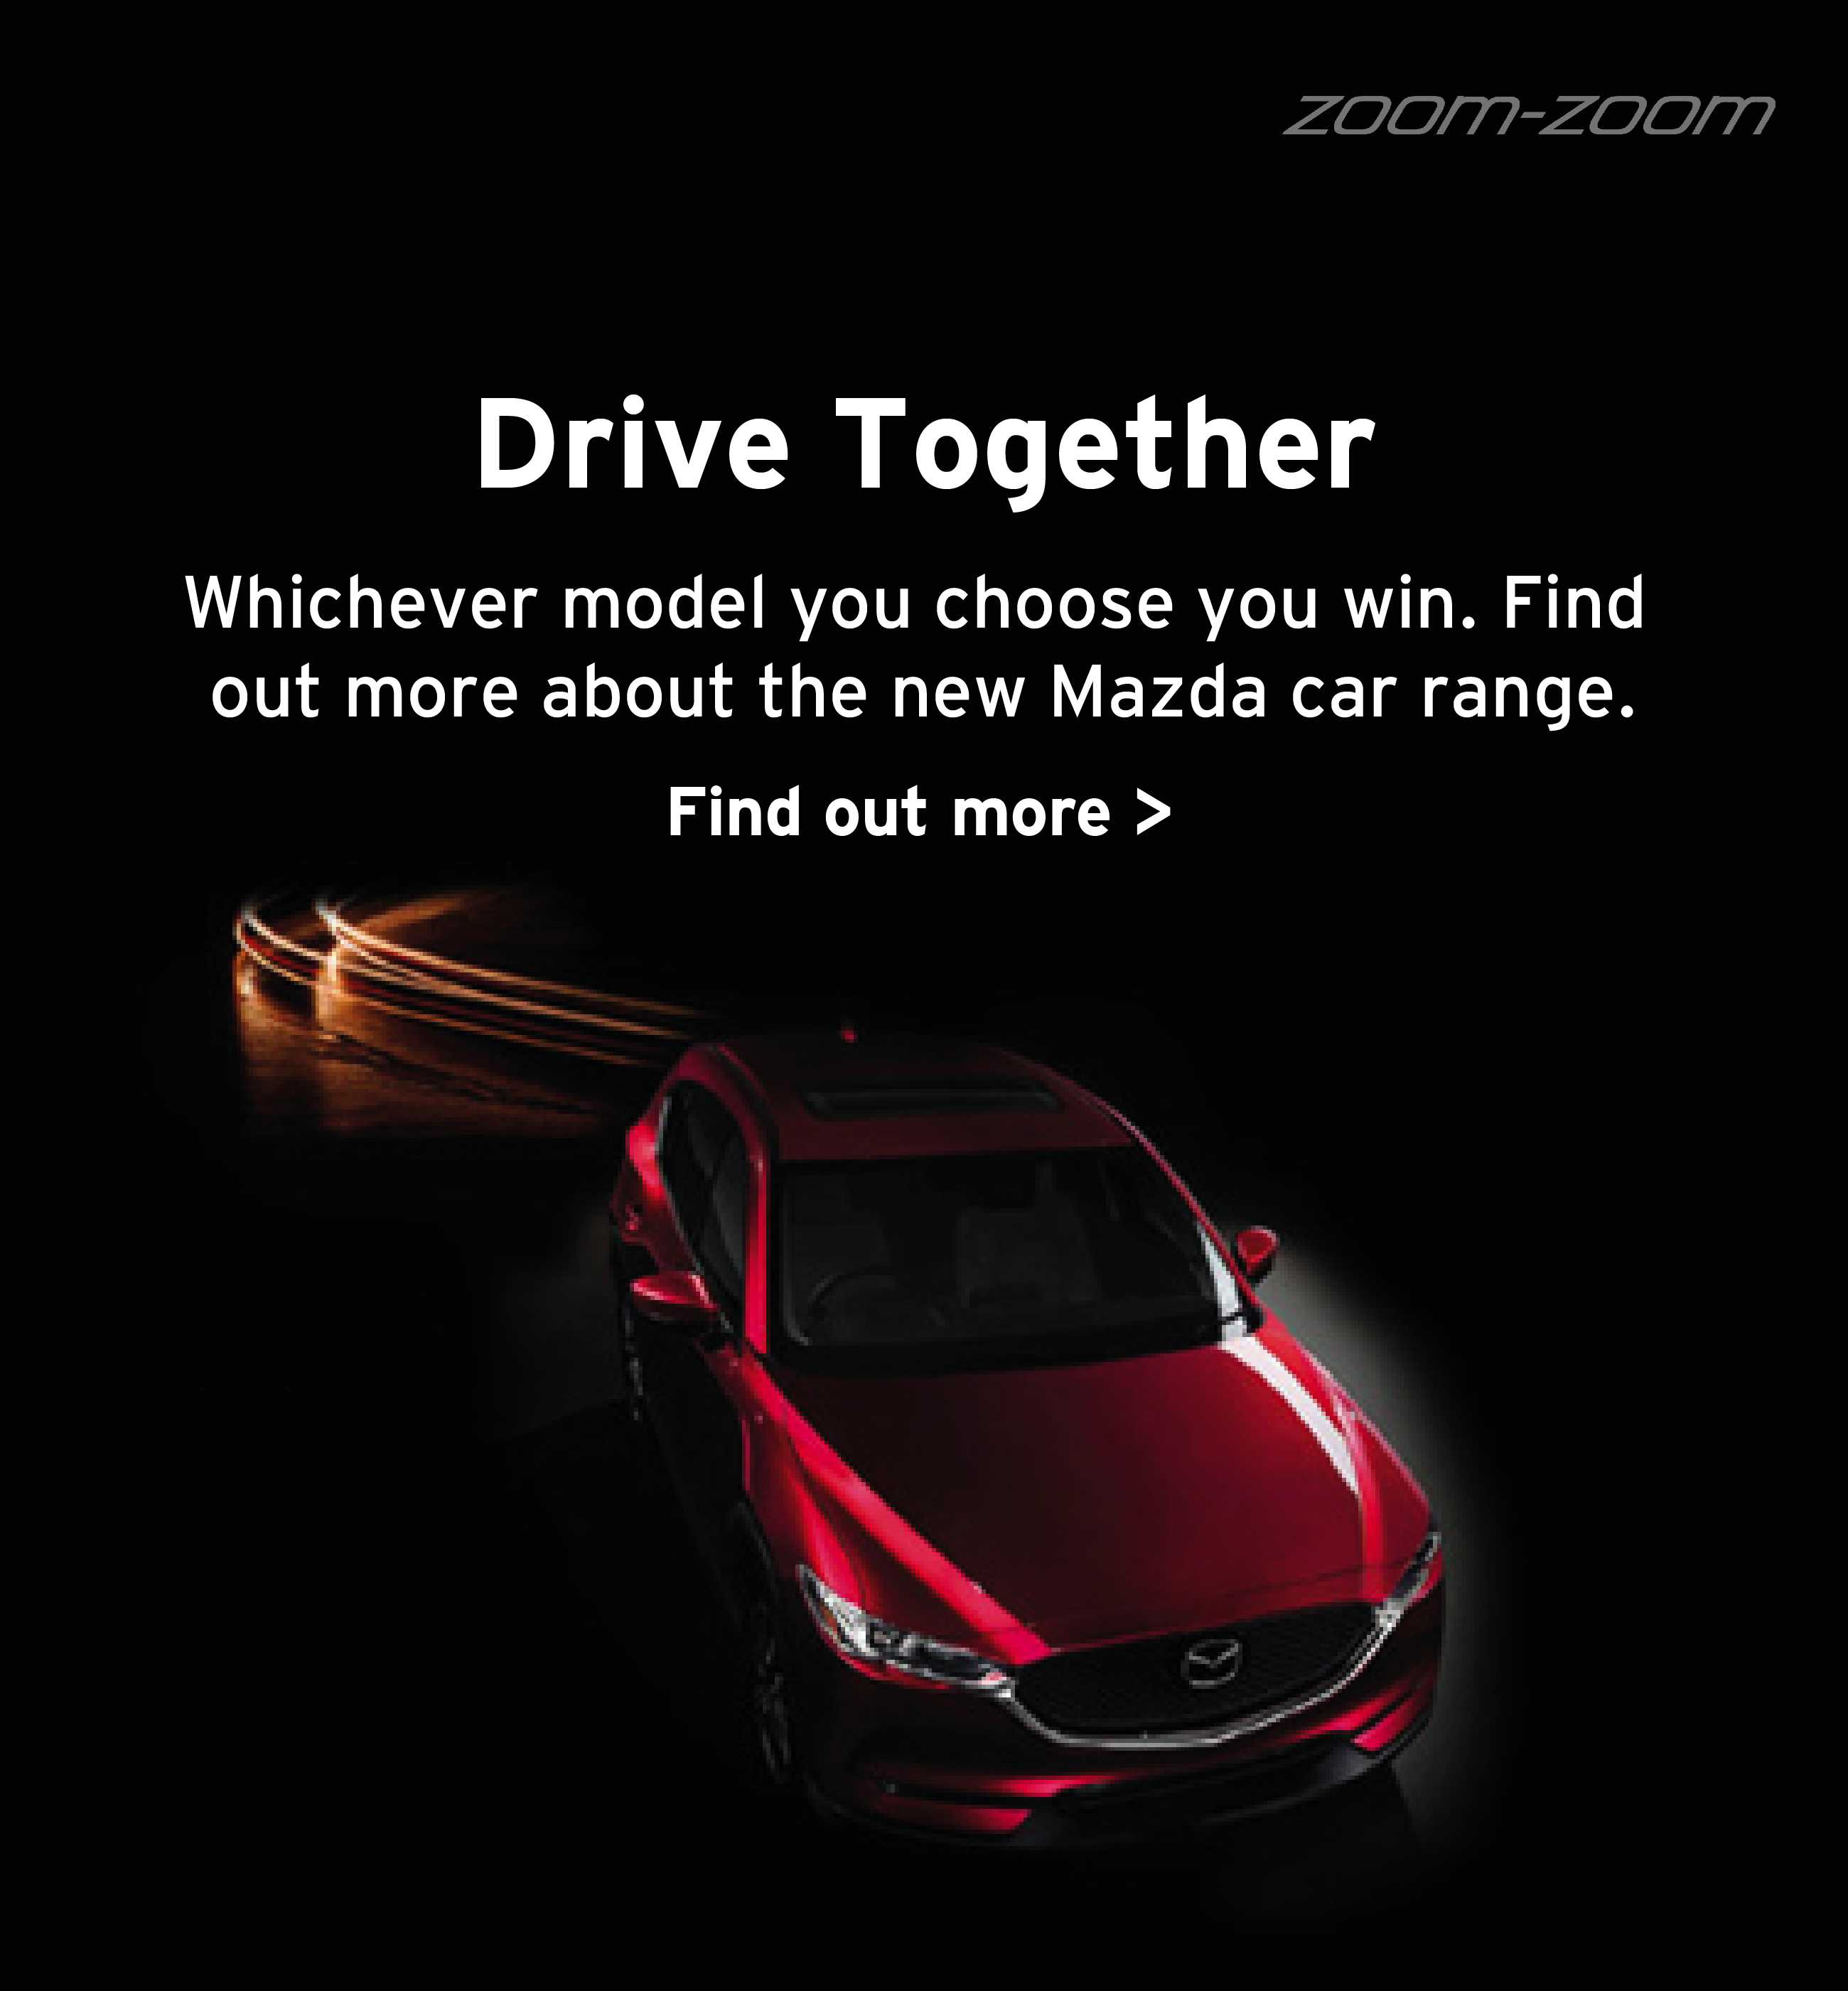 [Mazda Generic] Mazda Drive Together 010319 Banner 1